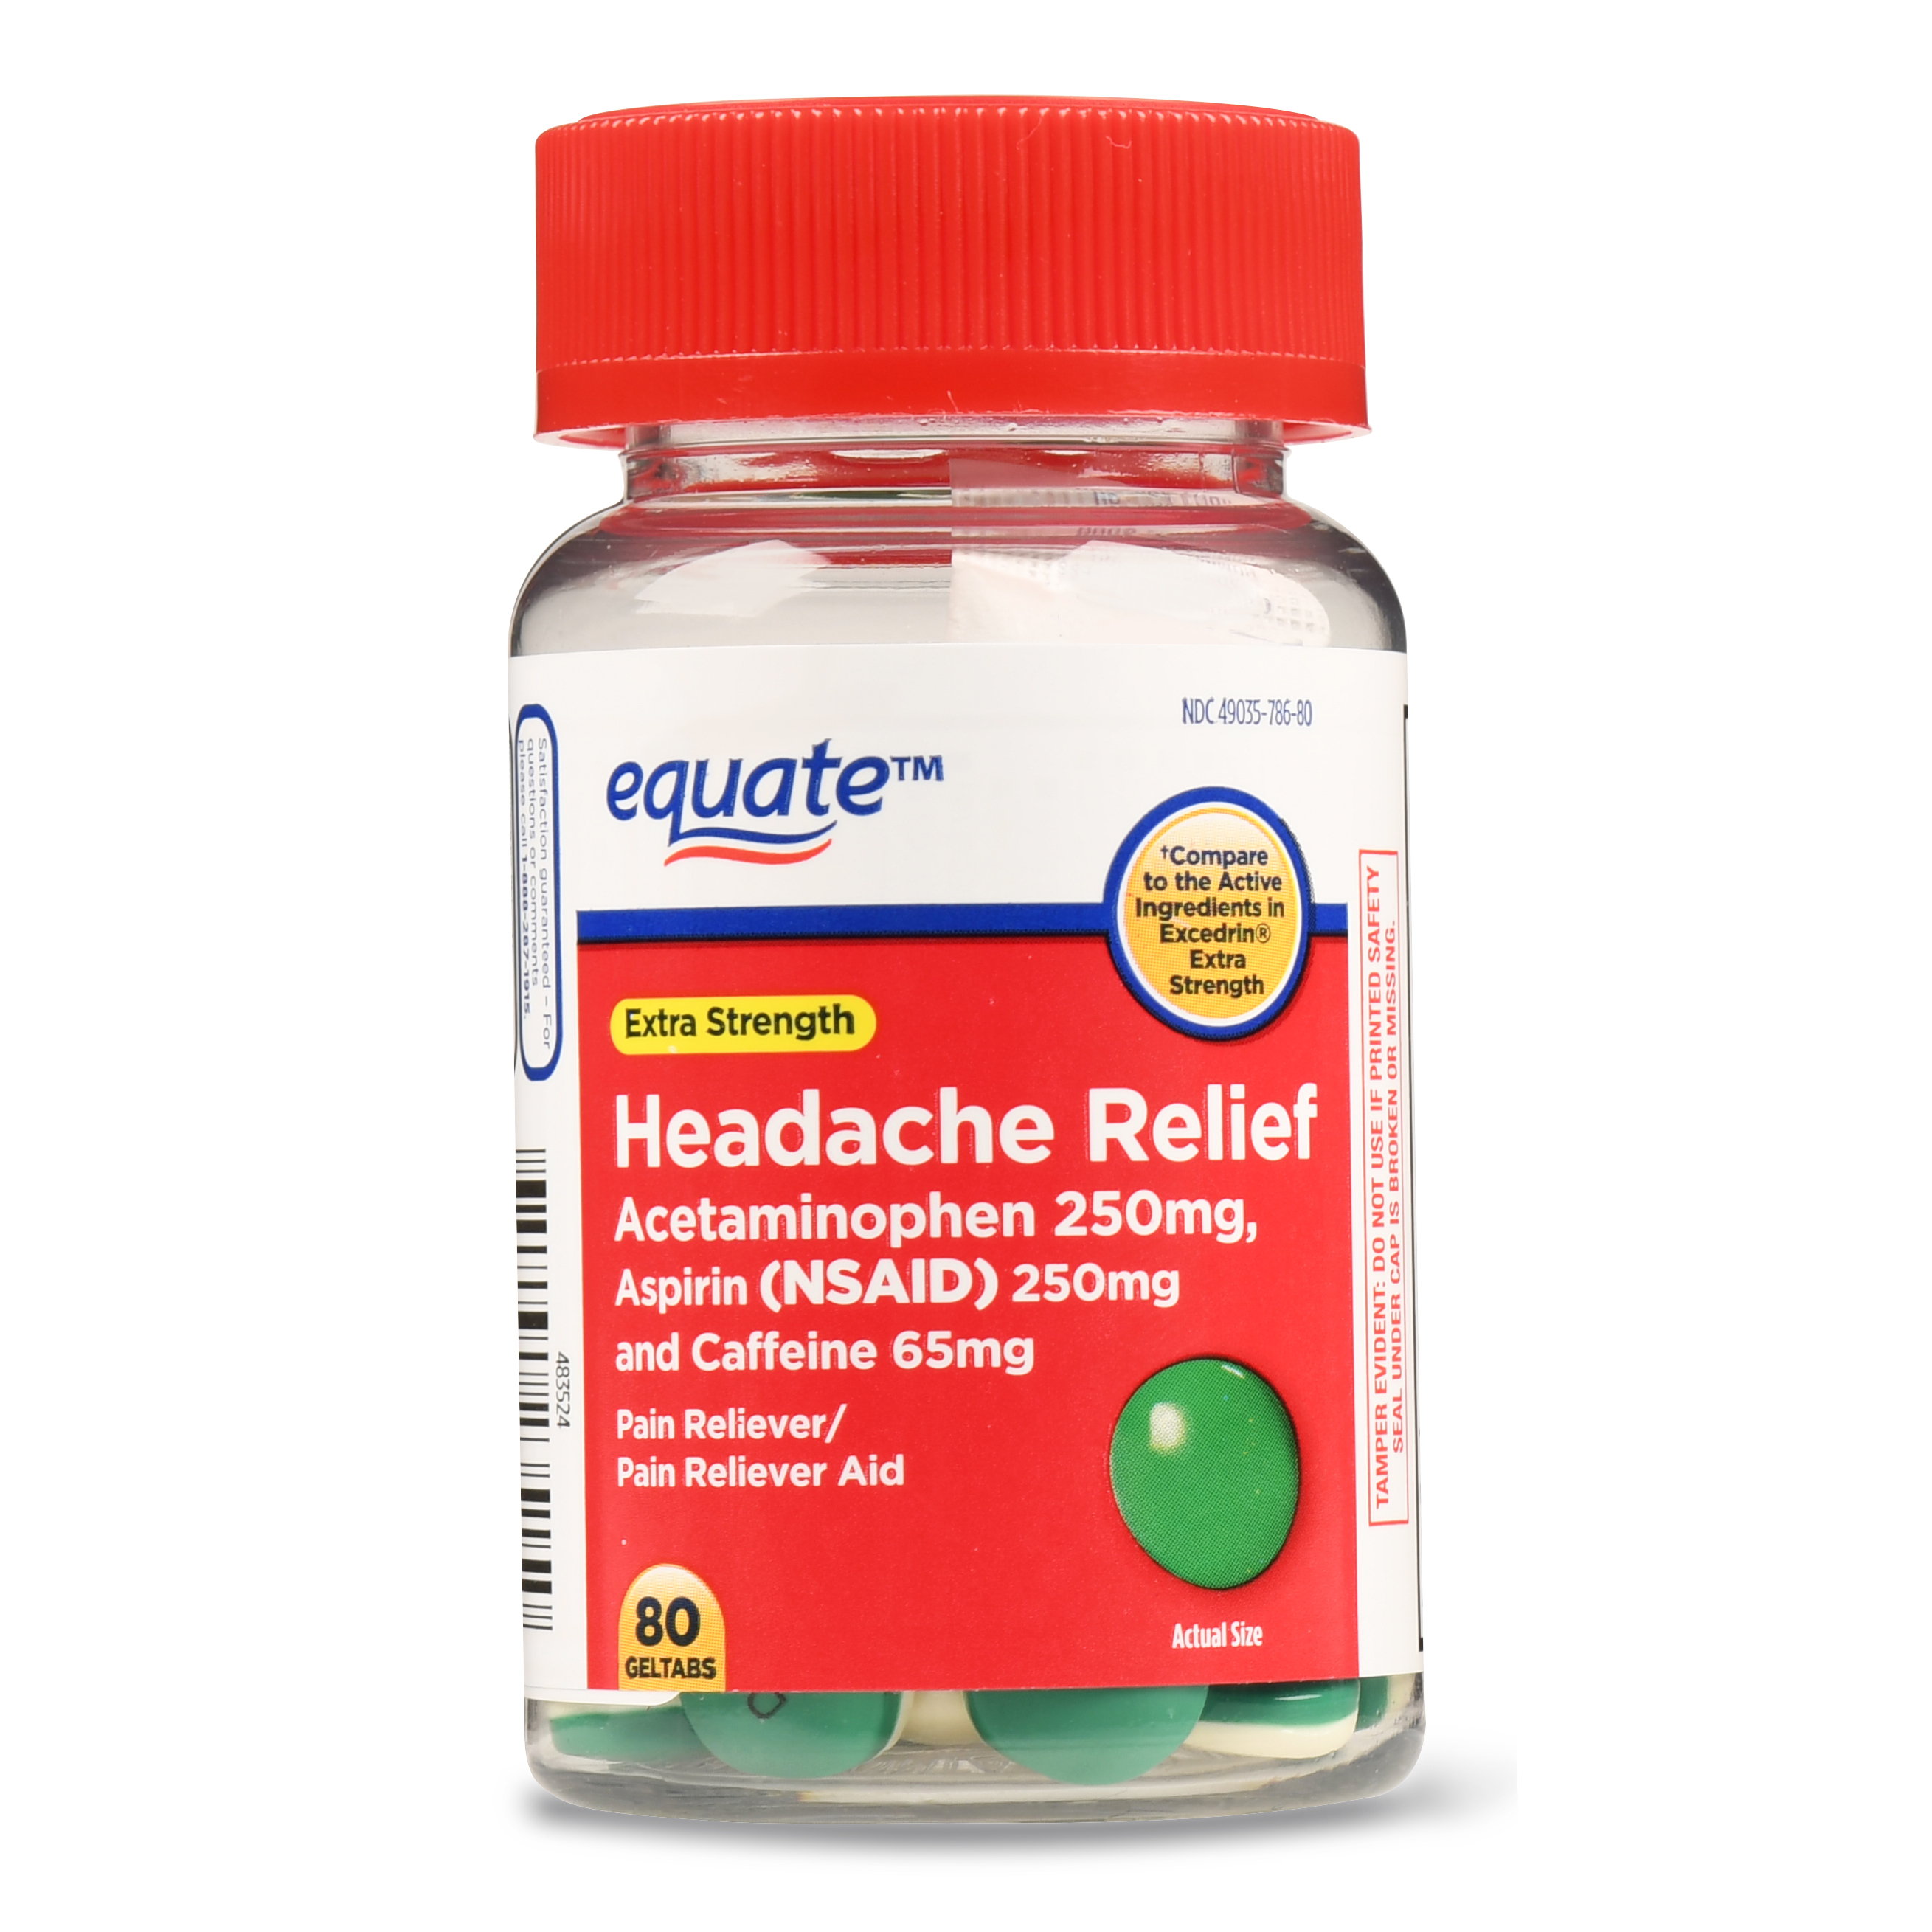 Equate Headache Relief Geltabs, Extra Strength, 250mg, 80 Count